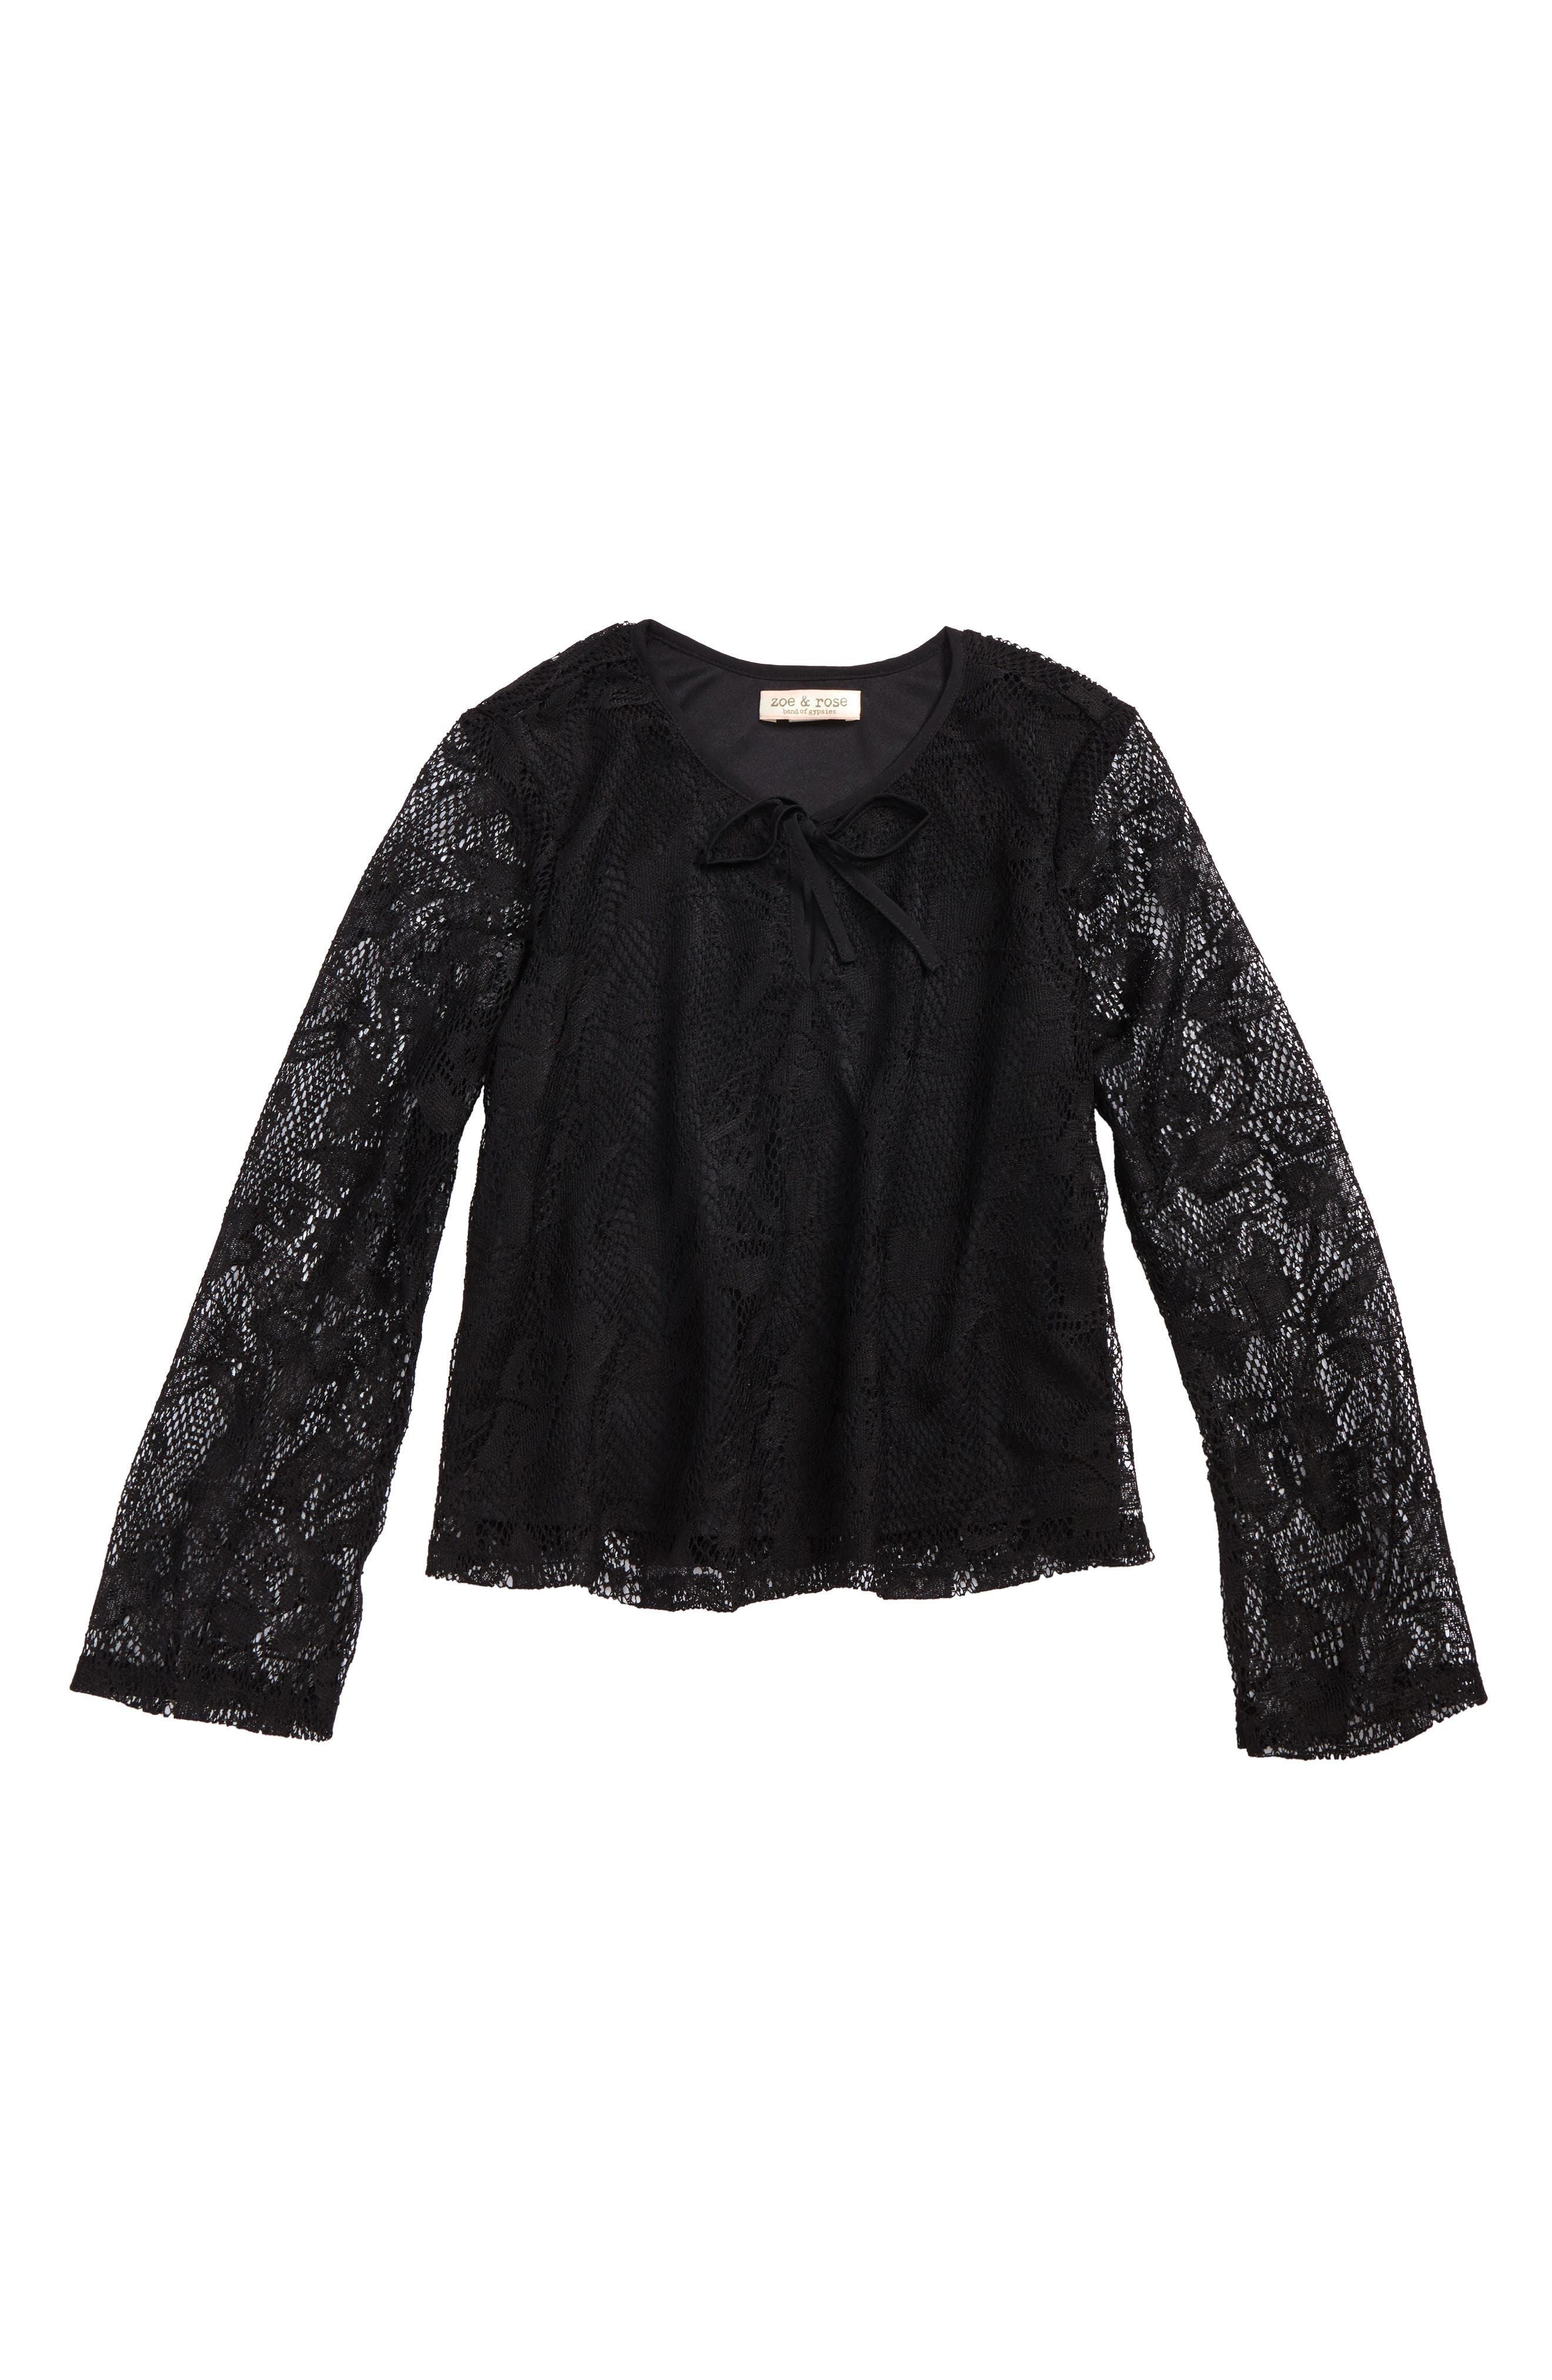 Zoe & Rose Lace Flare Sleeve Blouse,                             Main thumbnail 1, color,                             001